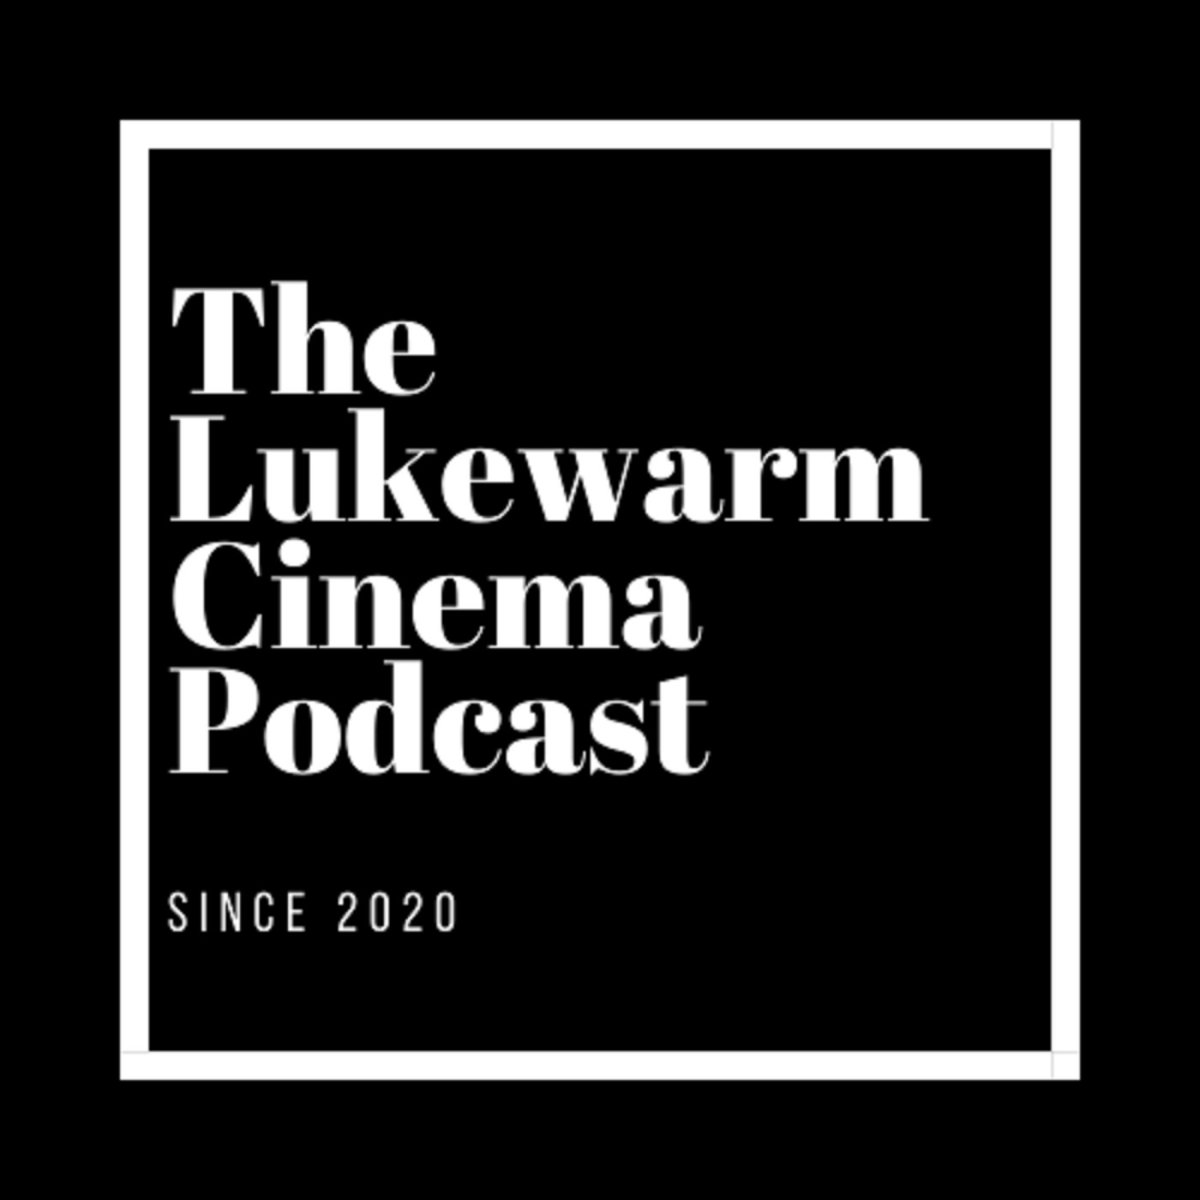 @LukewarmCinema just recorded this impressively splendid episode. Rock out with your sock out. #themandalorian #BSPN